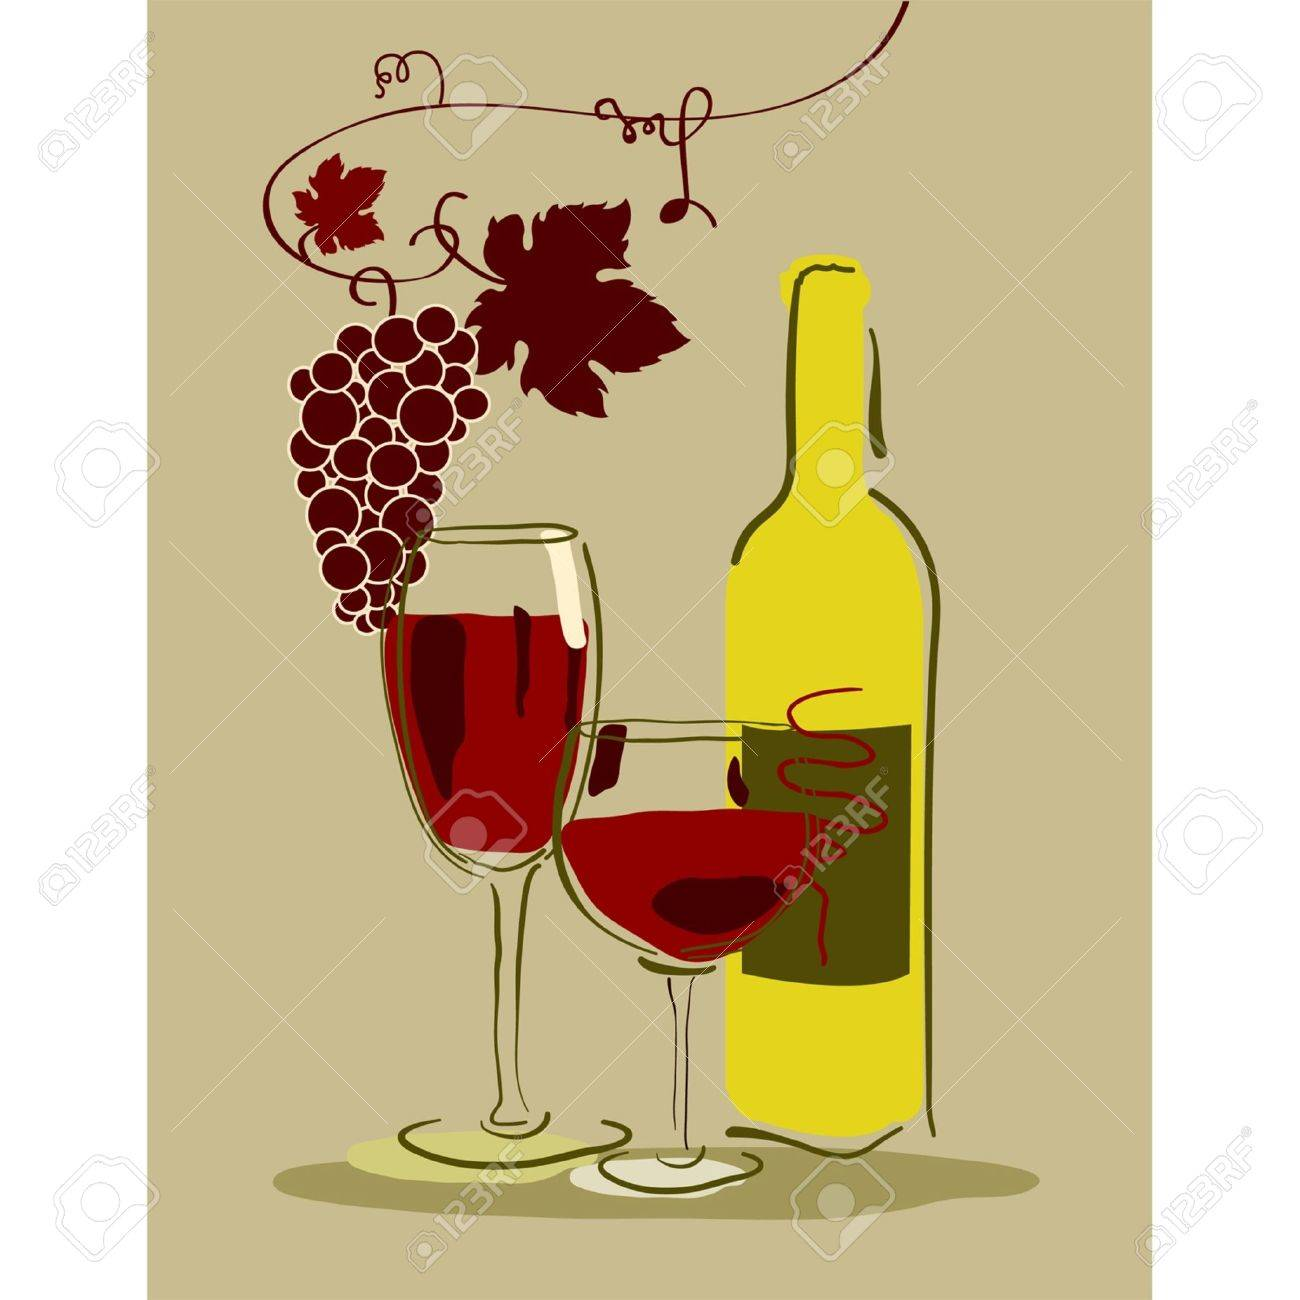 Stock Vector Illustration: A glass of red wine with grapes Stock Vector - 10104022